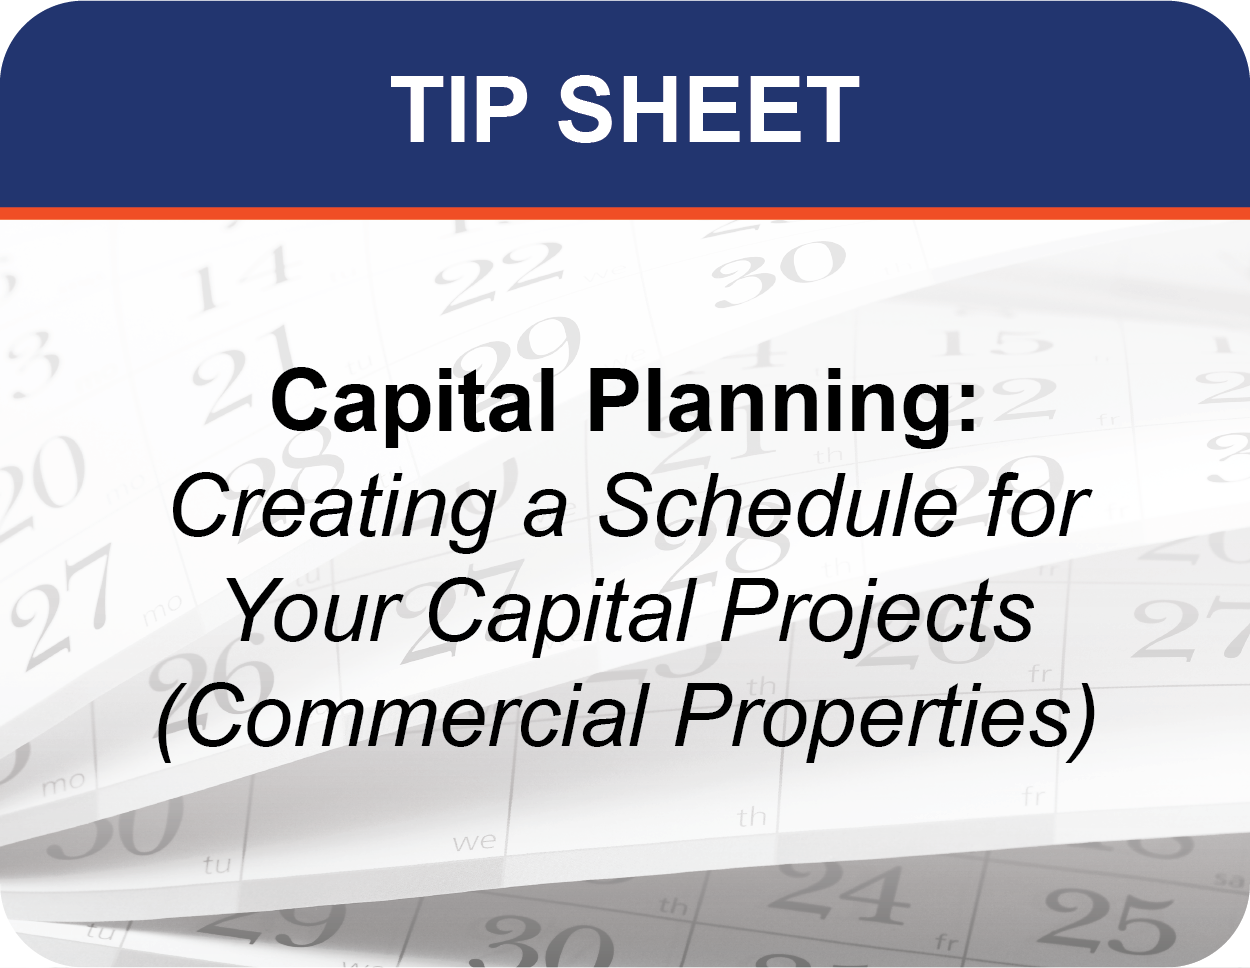 UNIVERSITY TOMBSTONE__Commercial- Capital Planning Schedule (CP) Tip Sheet (no button) (003).png